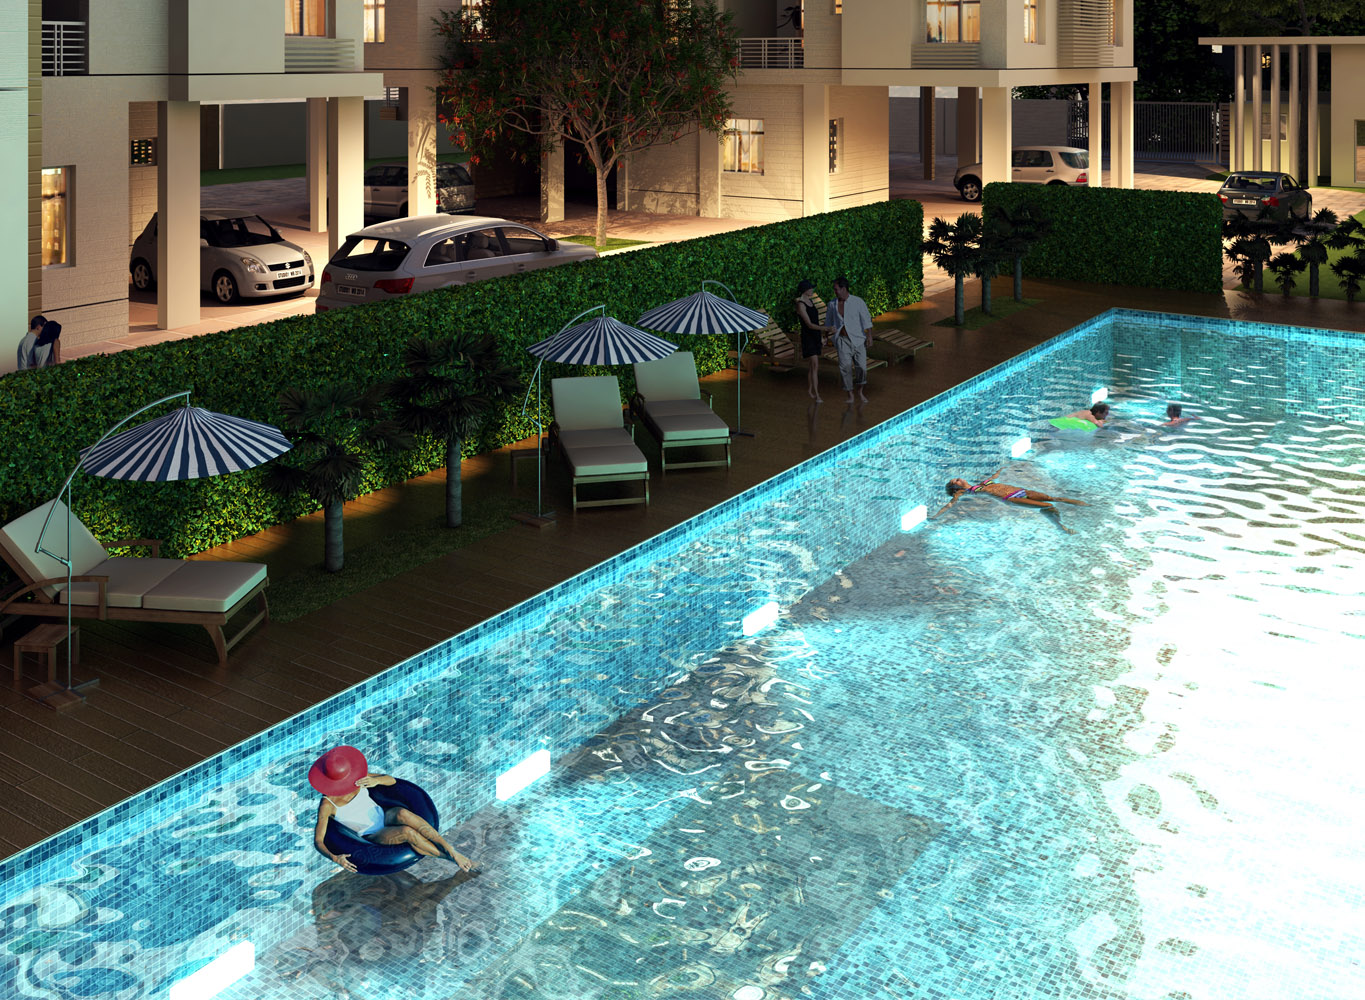 Eden Sky Terraces Swimming Pool - New Flats in Kolkata